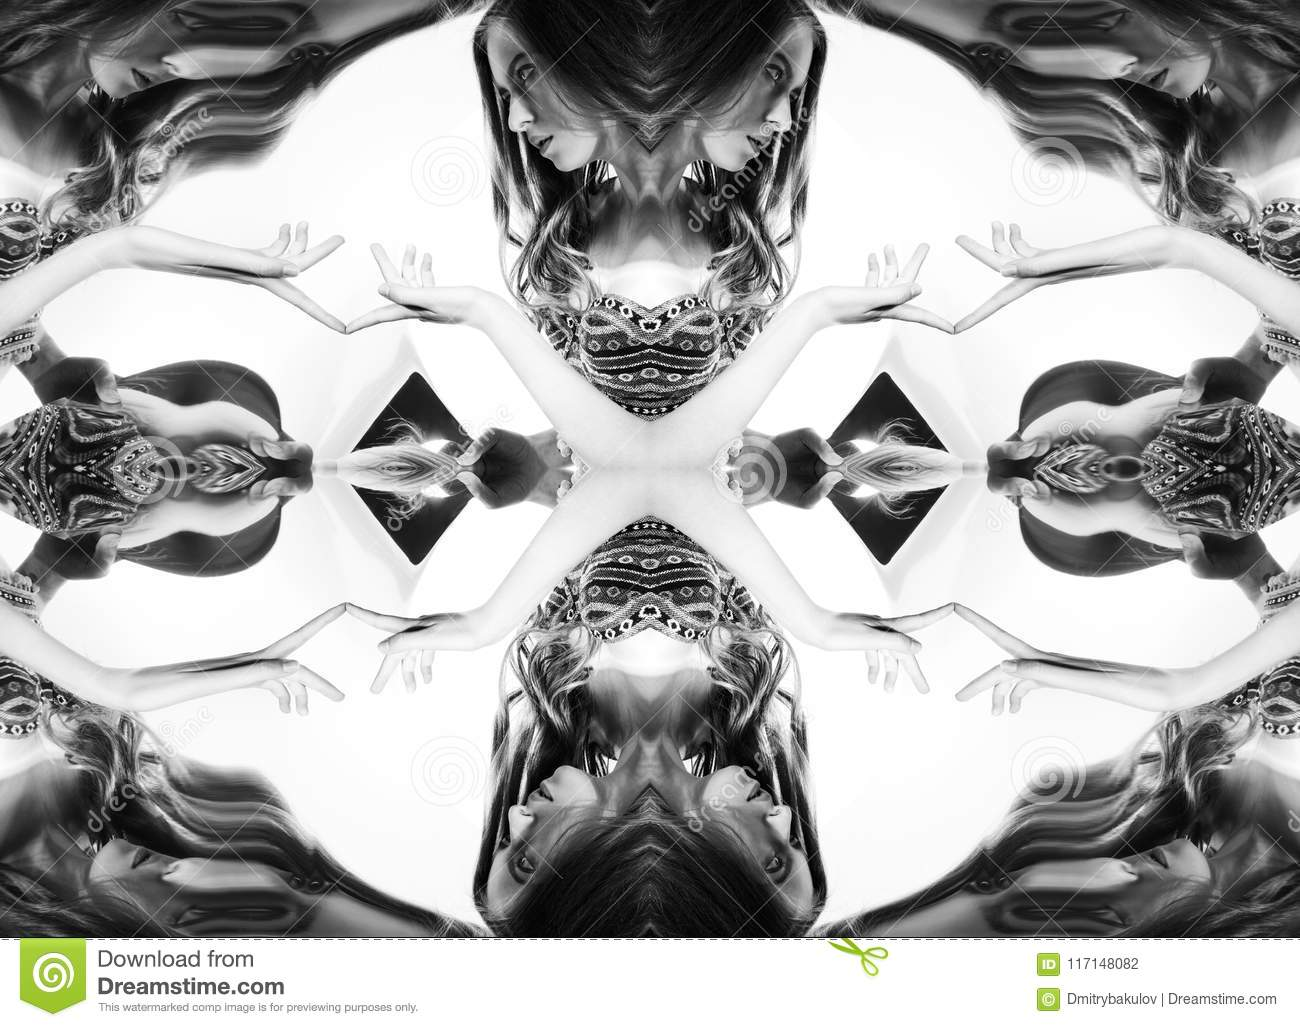 Kaleidoscope. Abstract montage of a beautiful young woman on white background. Black and white